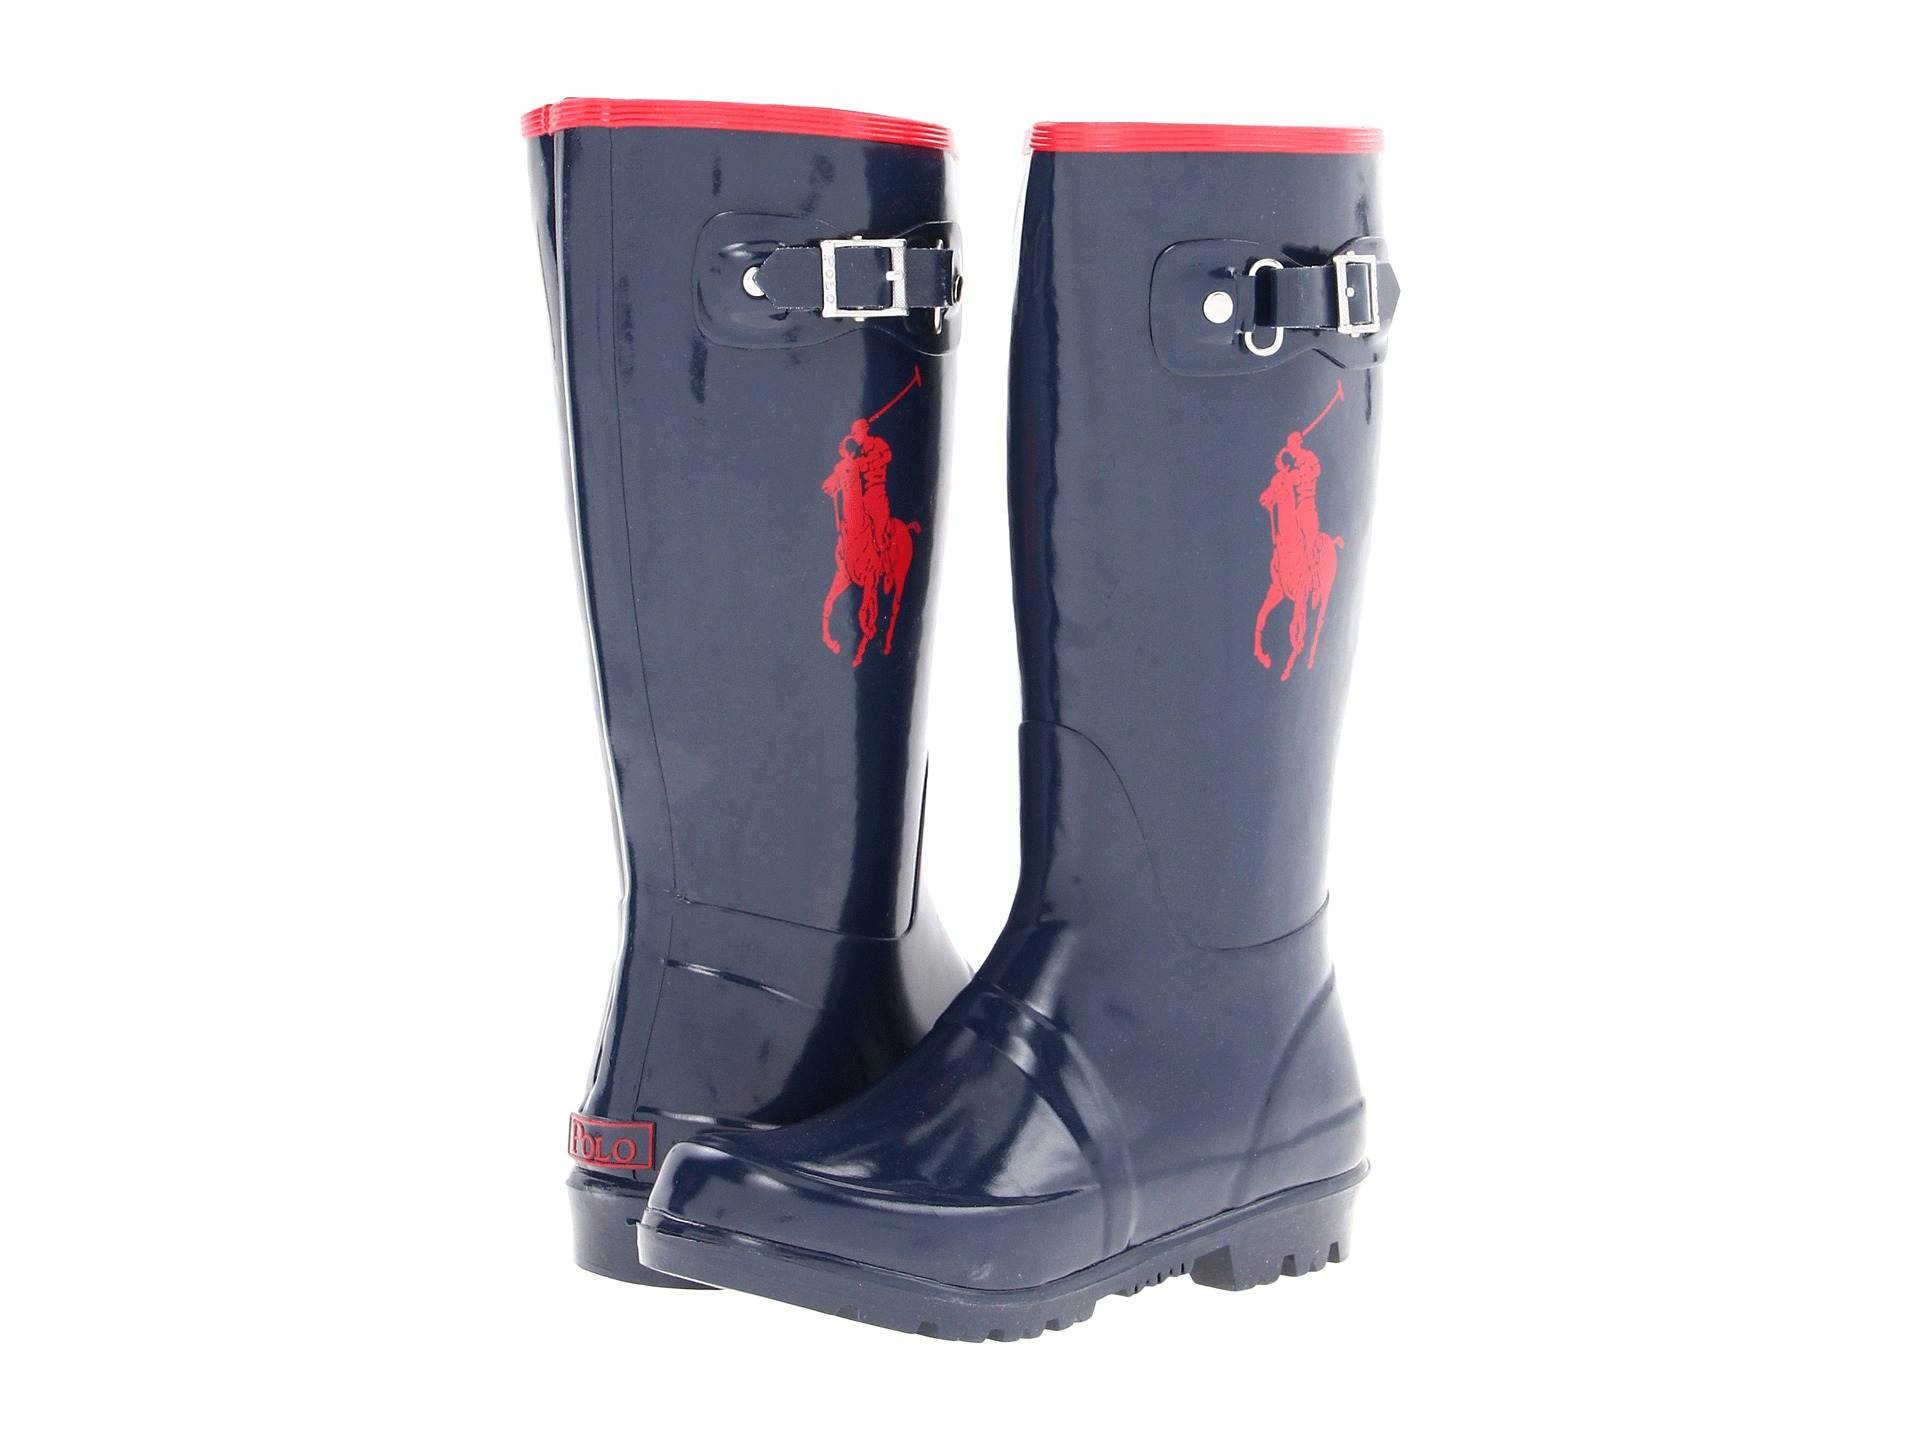 Elegant Book Of Polo Rain Boots For Women In Germany By Mia | Sobatapk.com